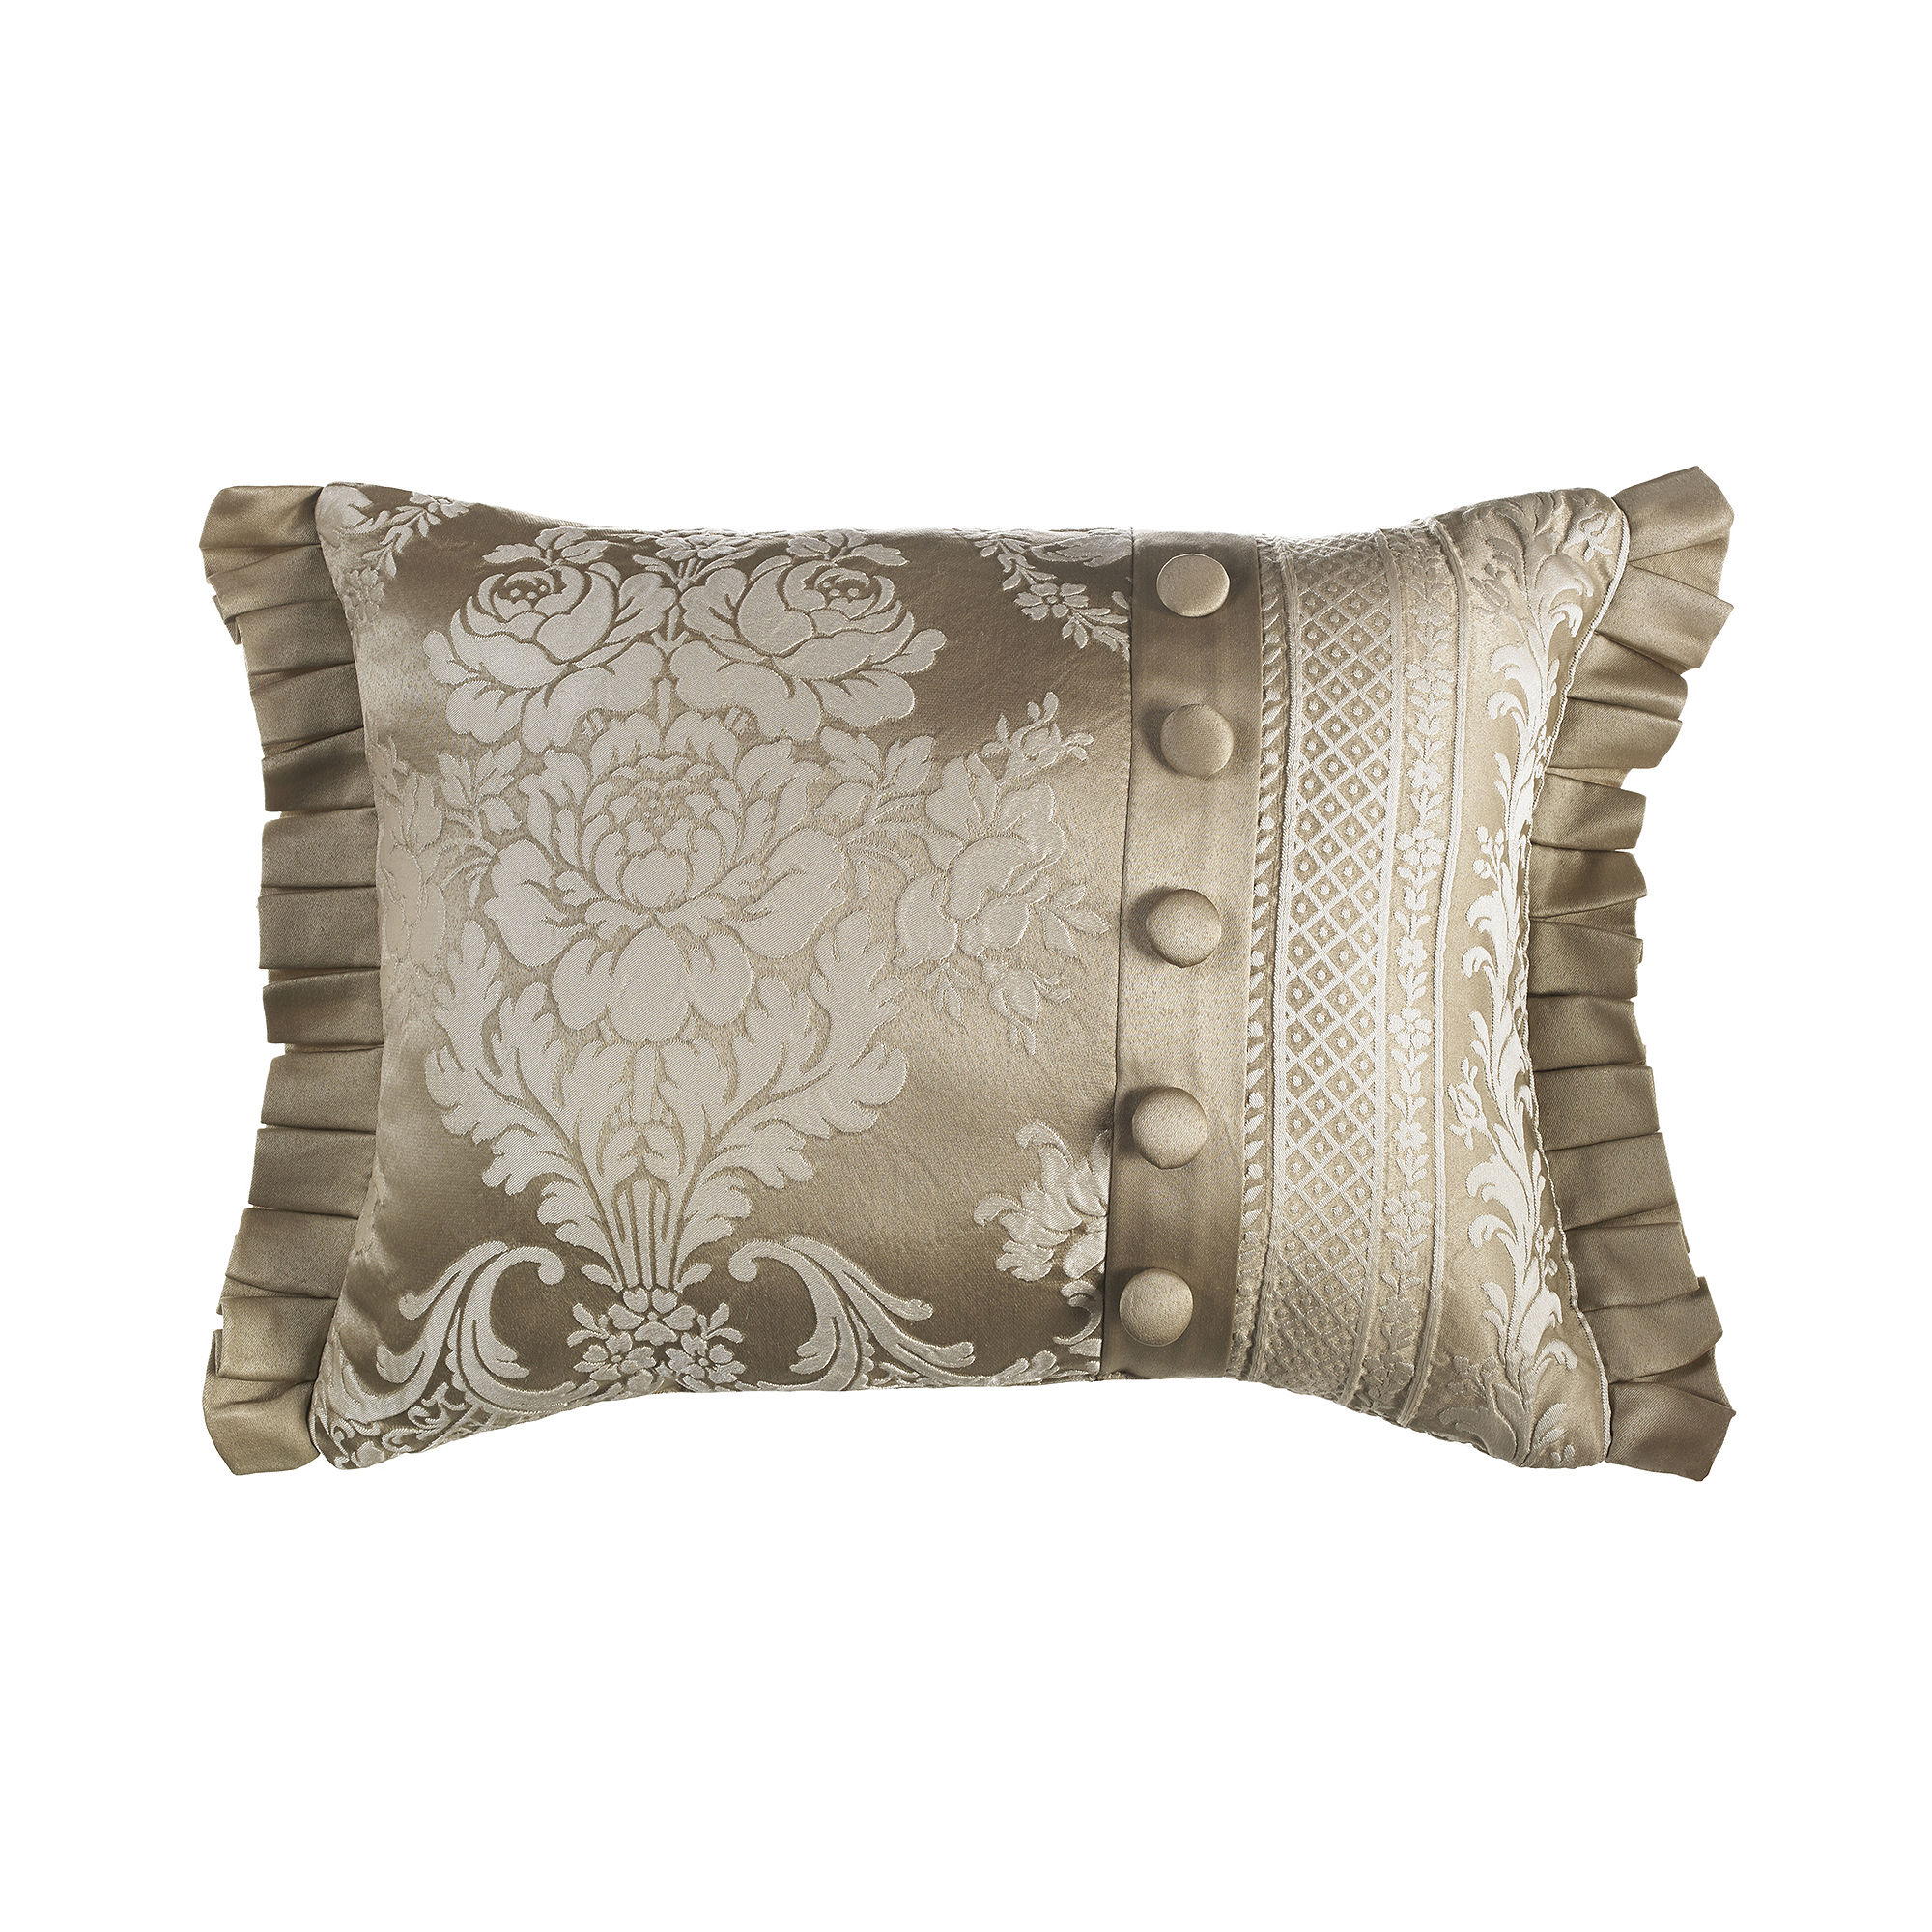 Queen Street Decorative Pillows : UPC 846339036248 - Queen Street Camilla Oblong Decorative Pillow upcitemdb.com